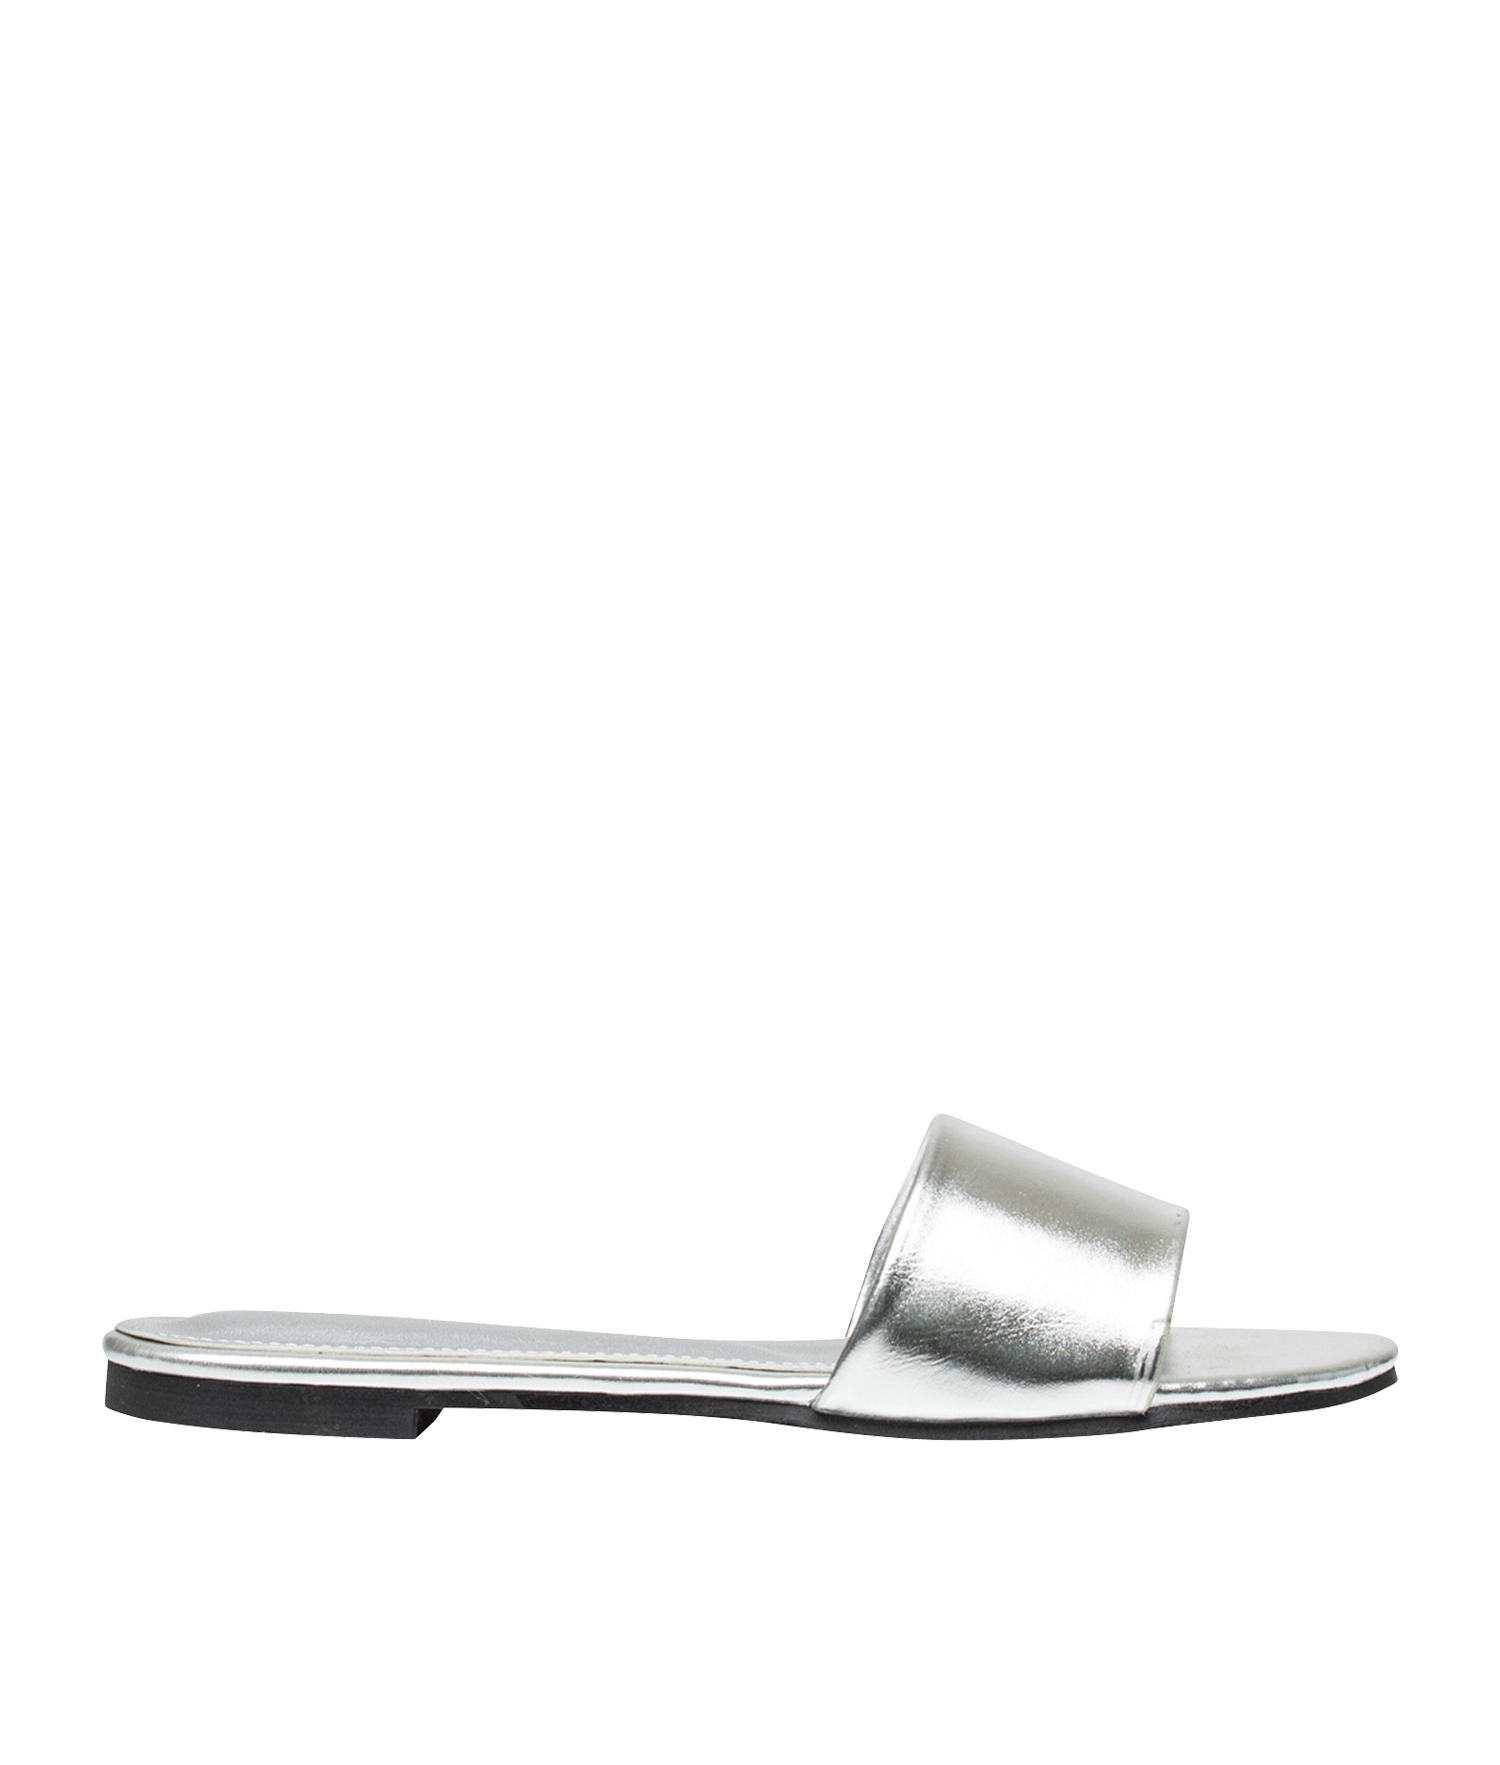 6d9fc803ae3 AnnaKastle Womens Vegan Leather One Strap Slide Sandals Silver